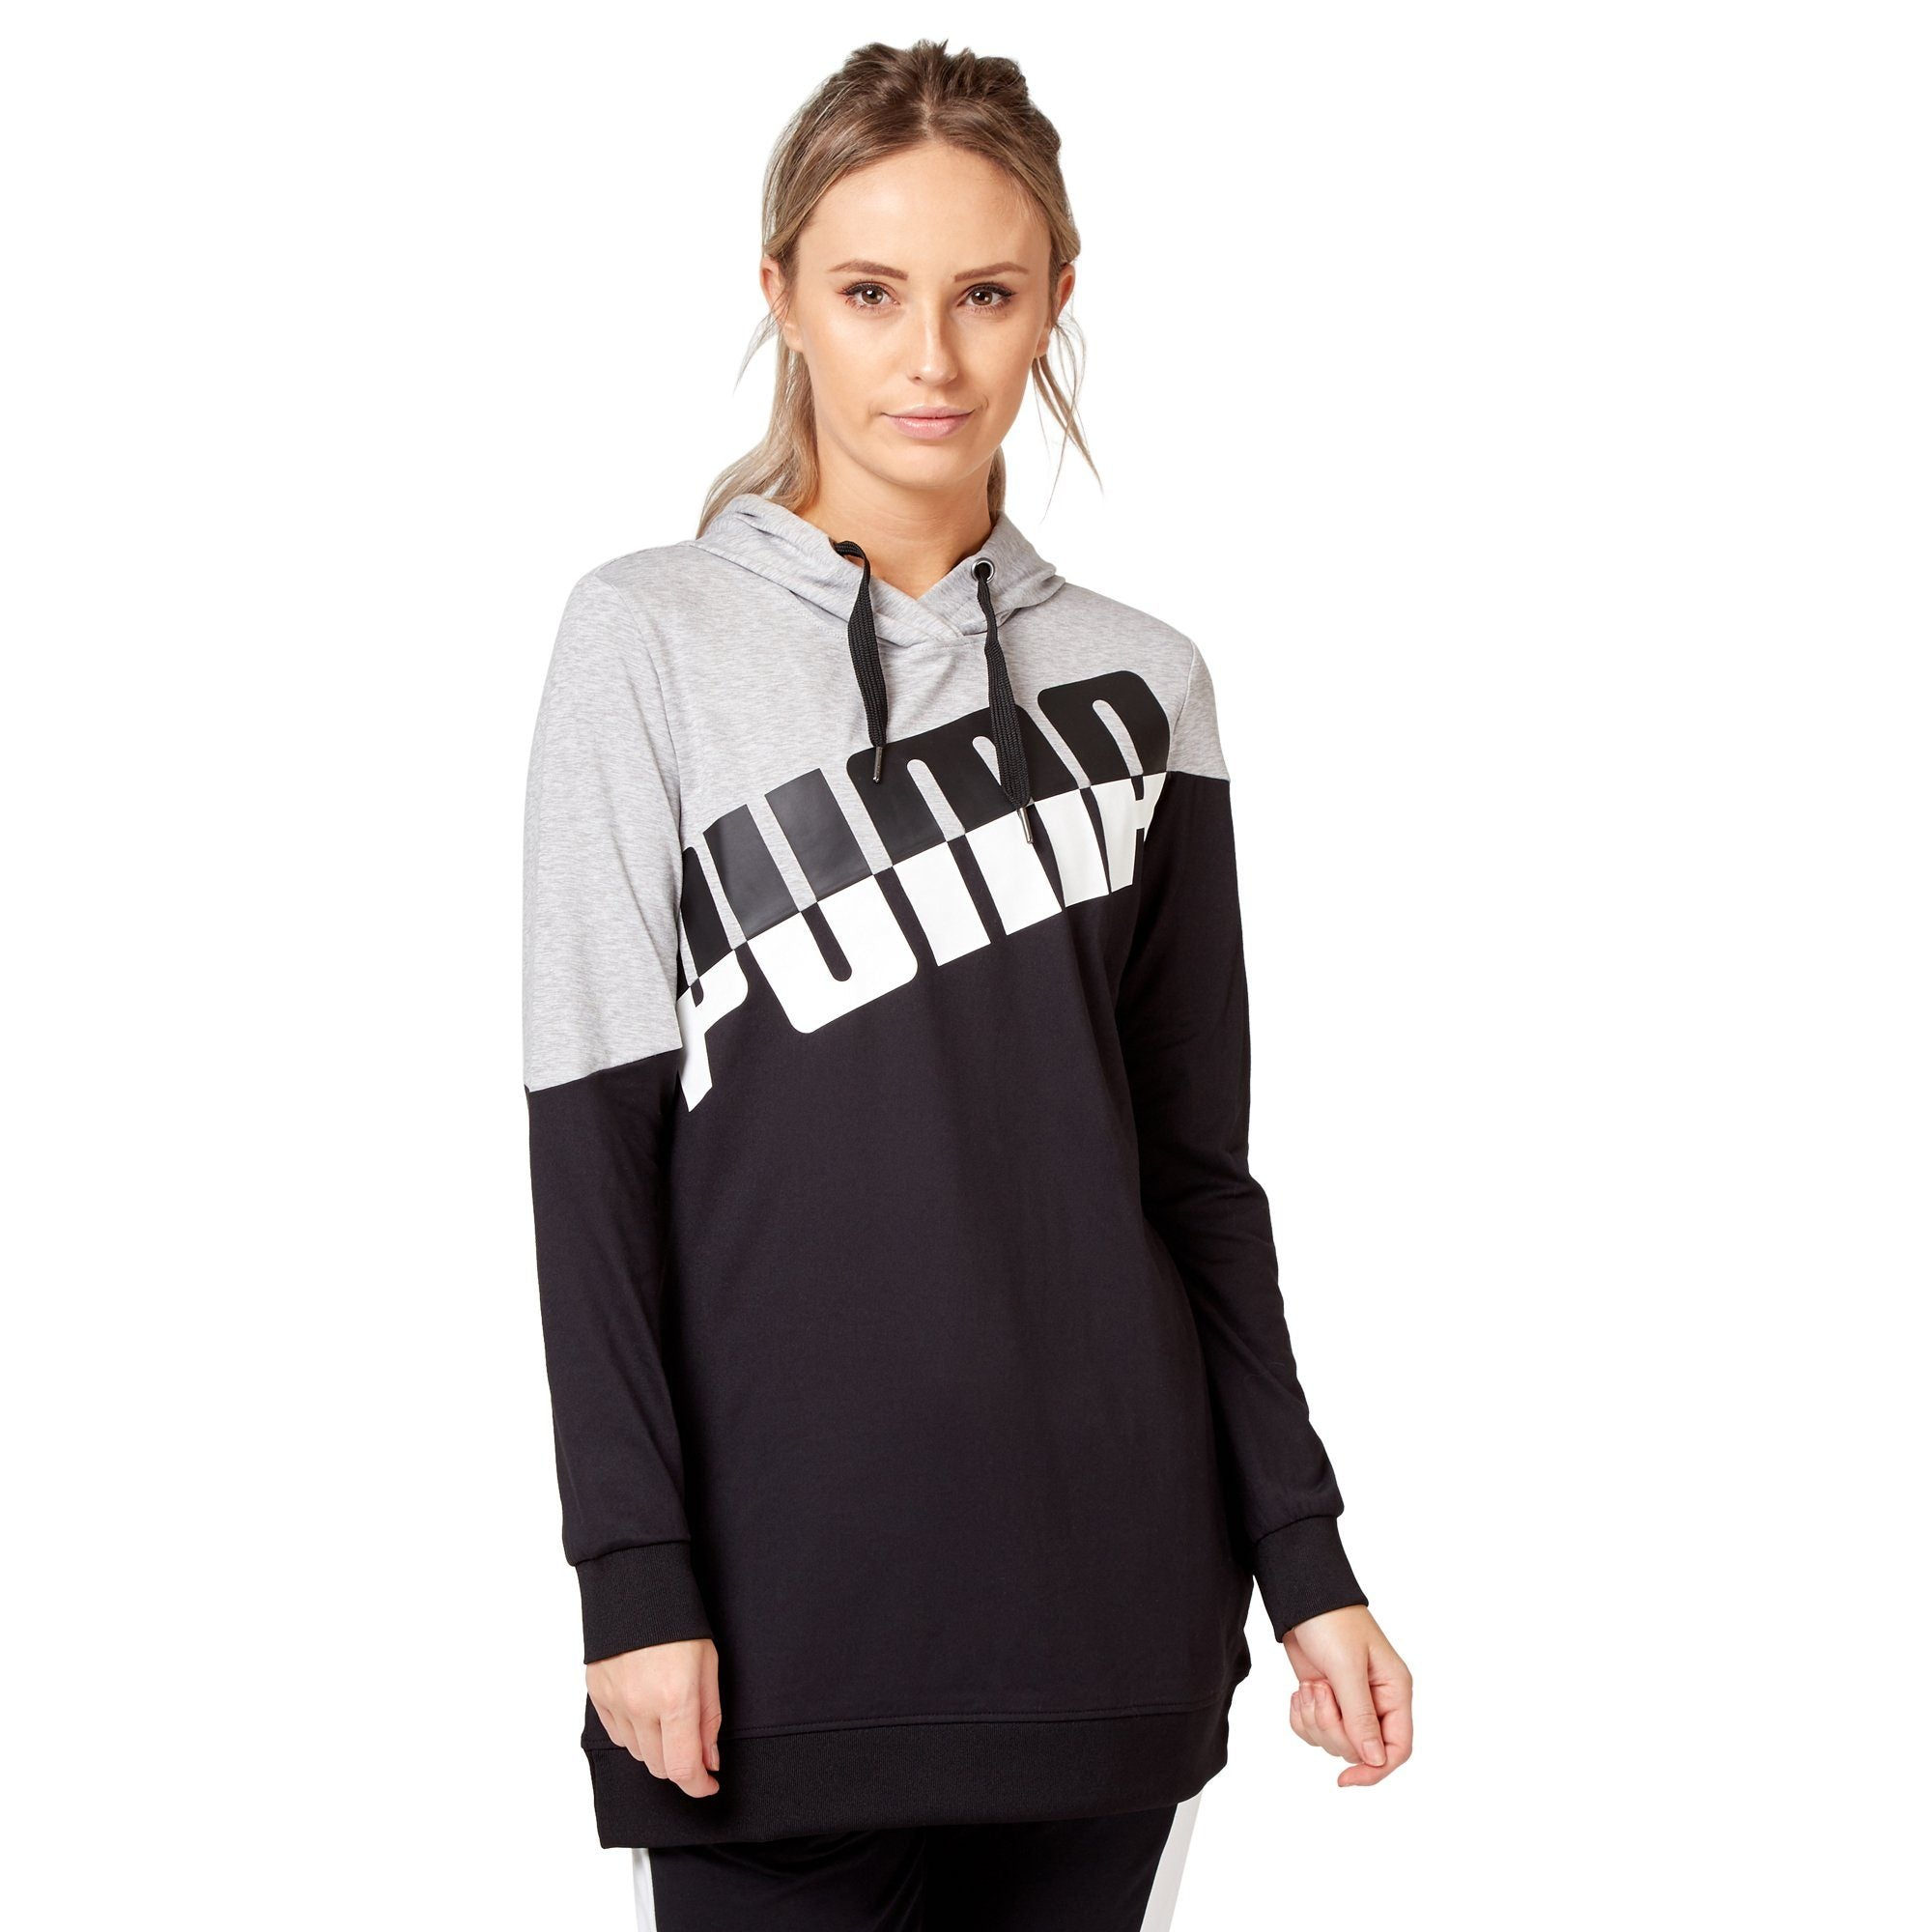 Puma Women's A.C.E. Blocked Hoodie - Light Grey Heather/Black Apparel Puma